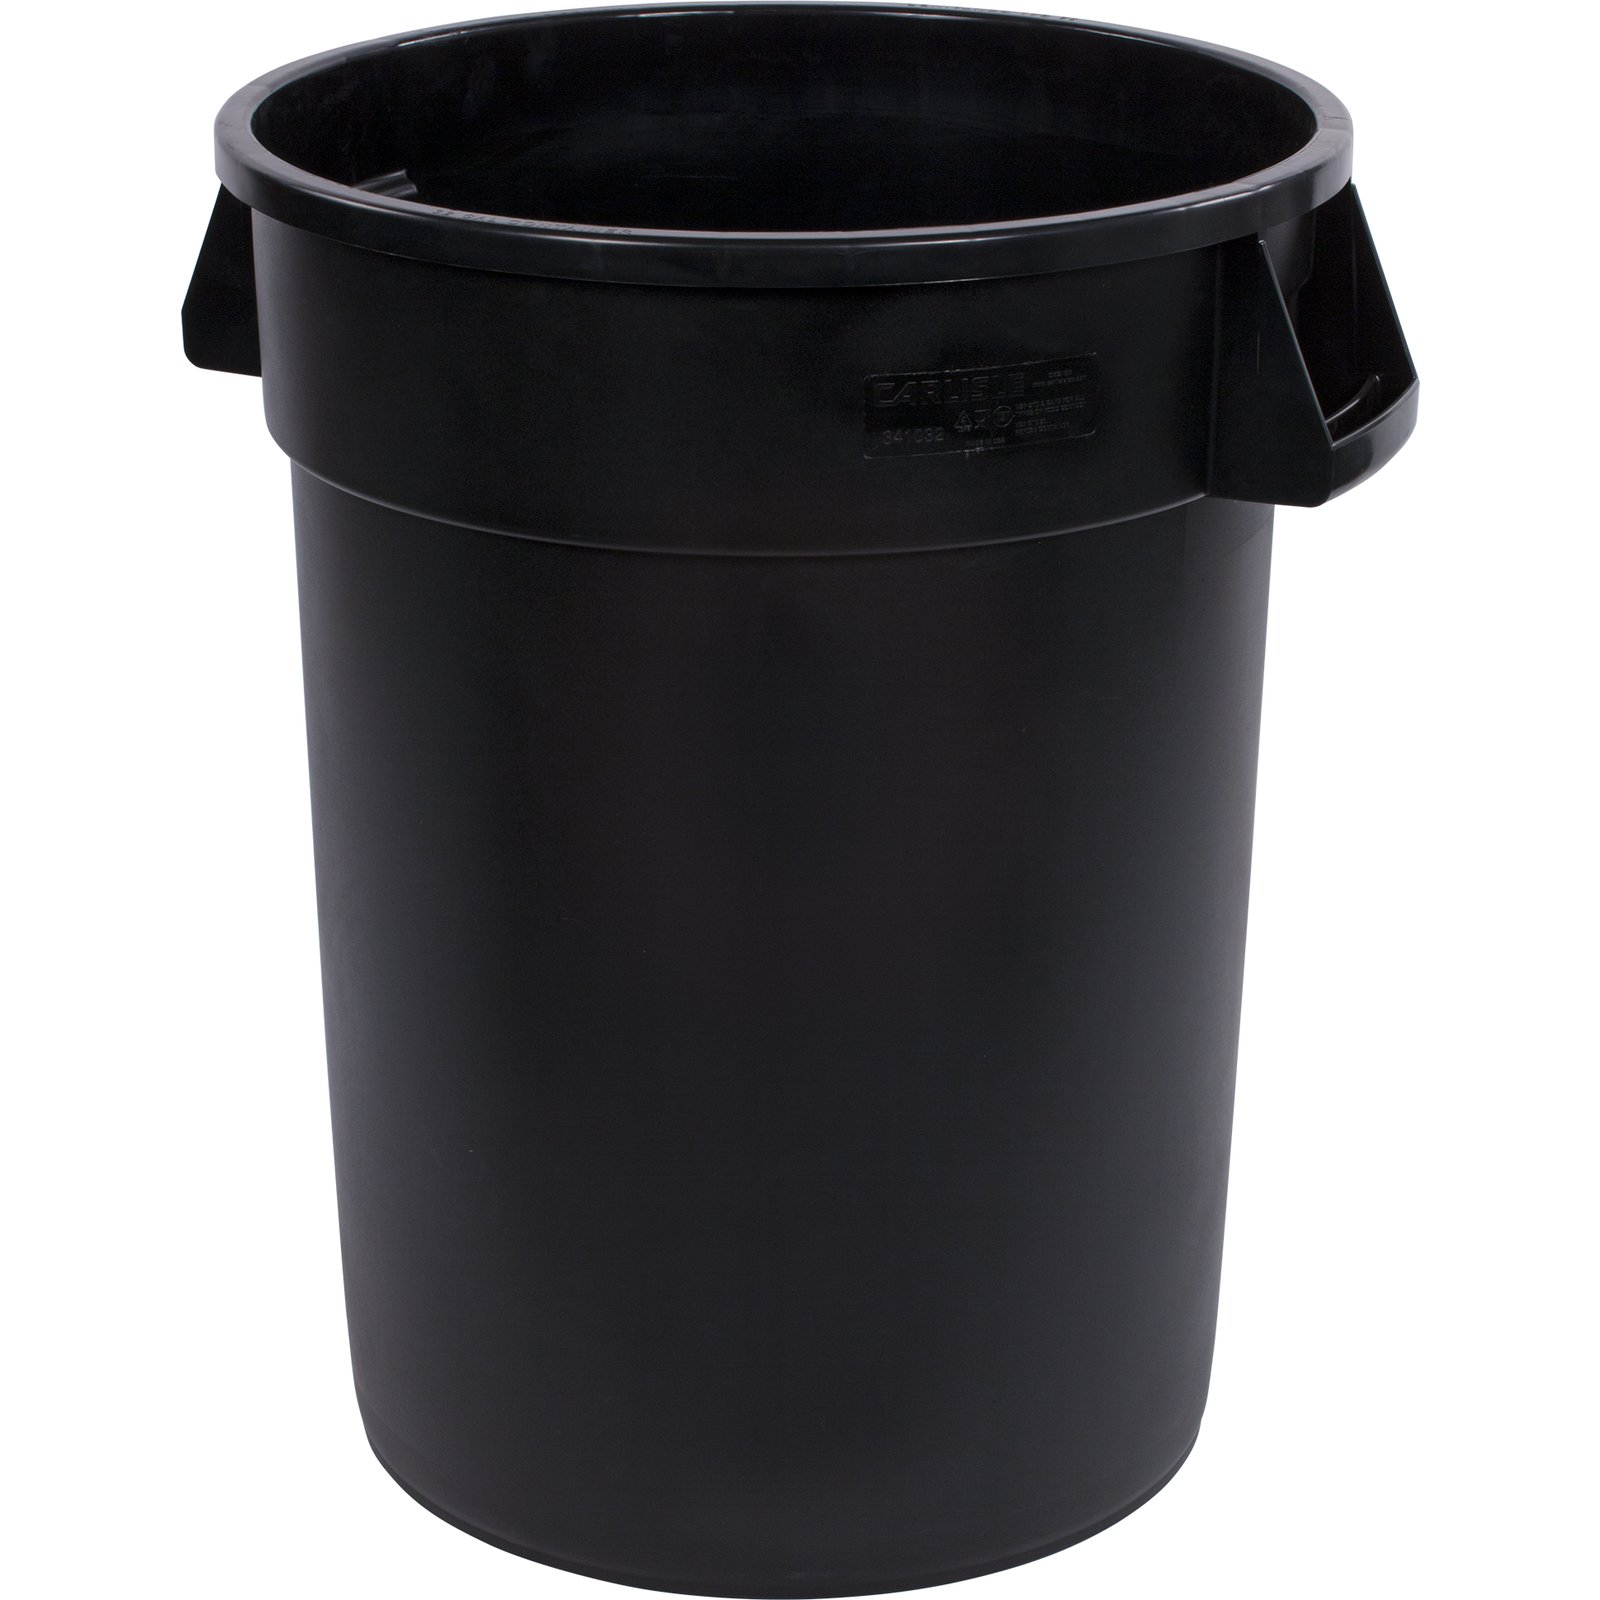 32GAL BLK CONTAINER 4CS BRONCO ROUND TRASH CONTAINER